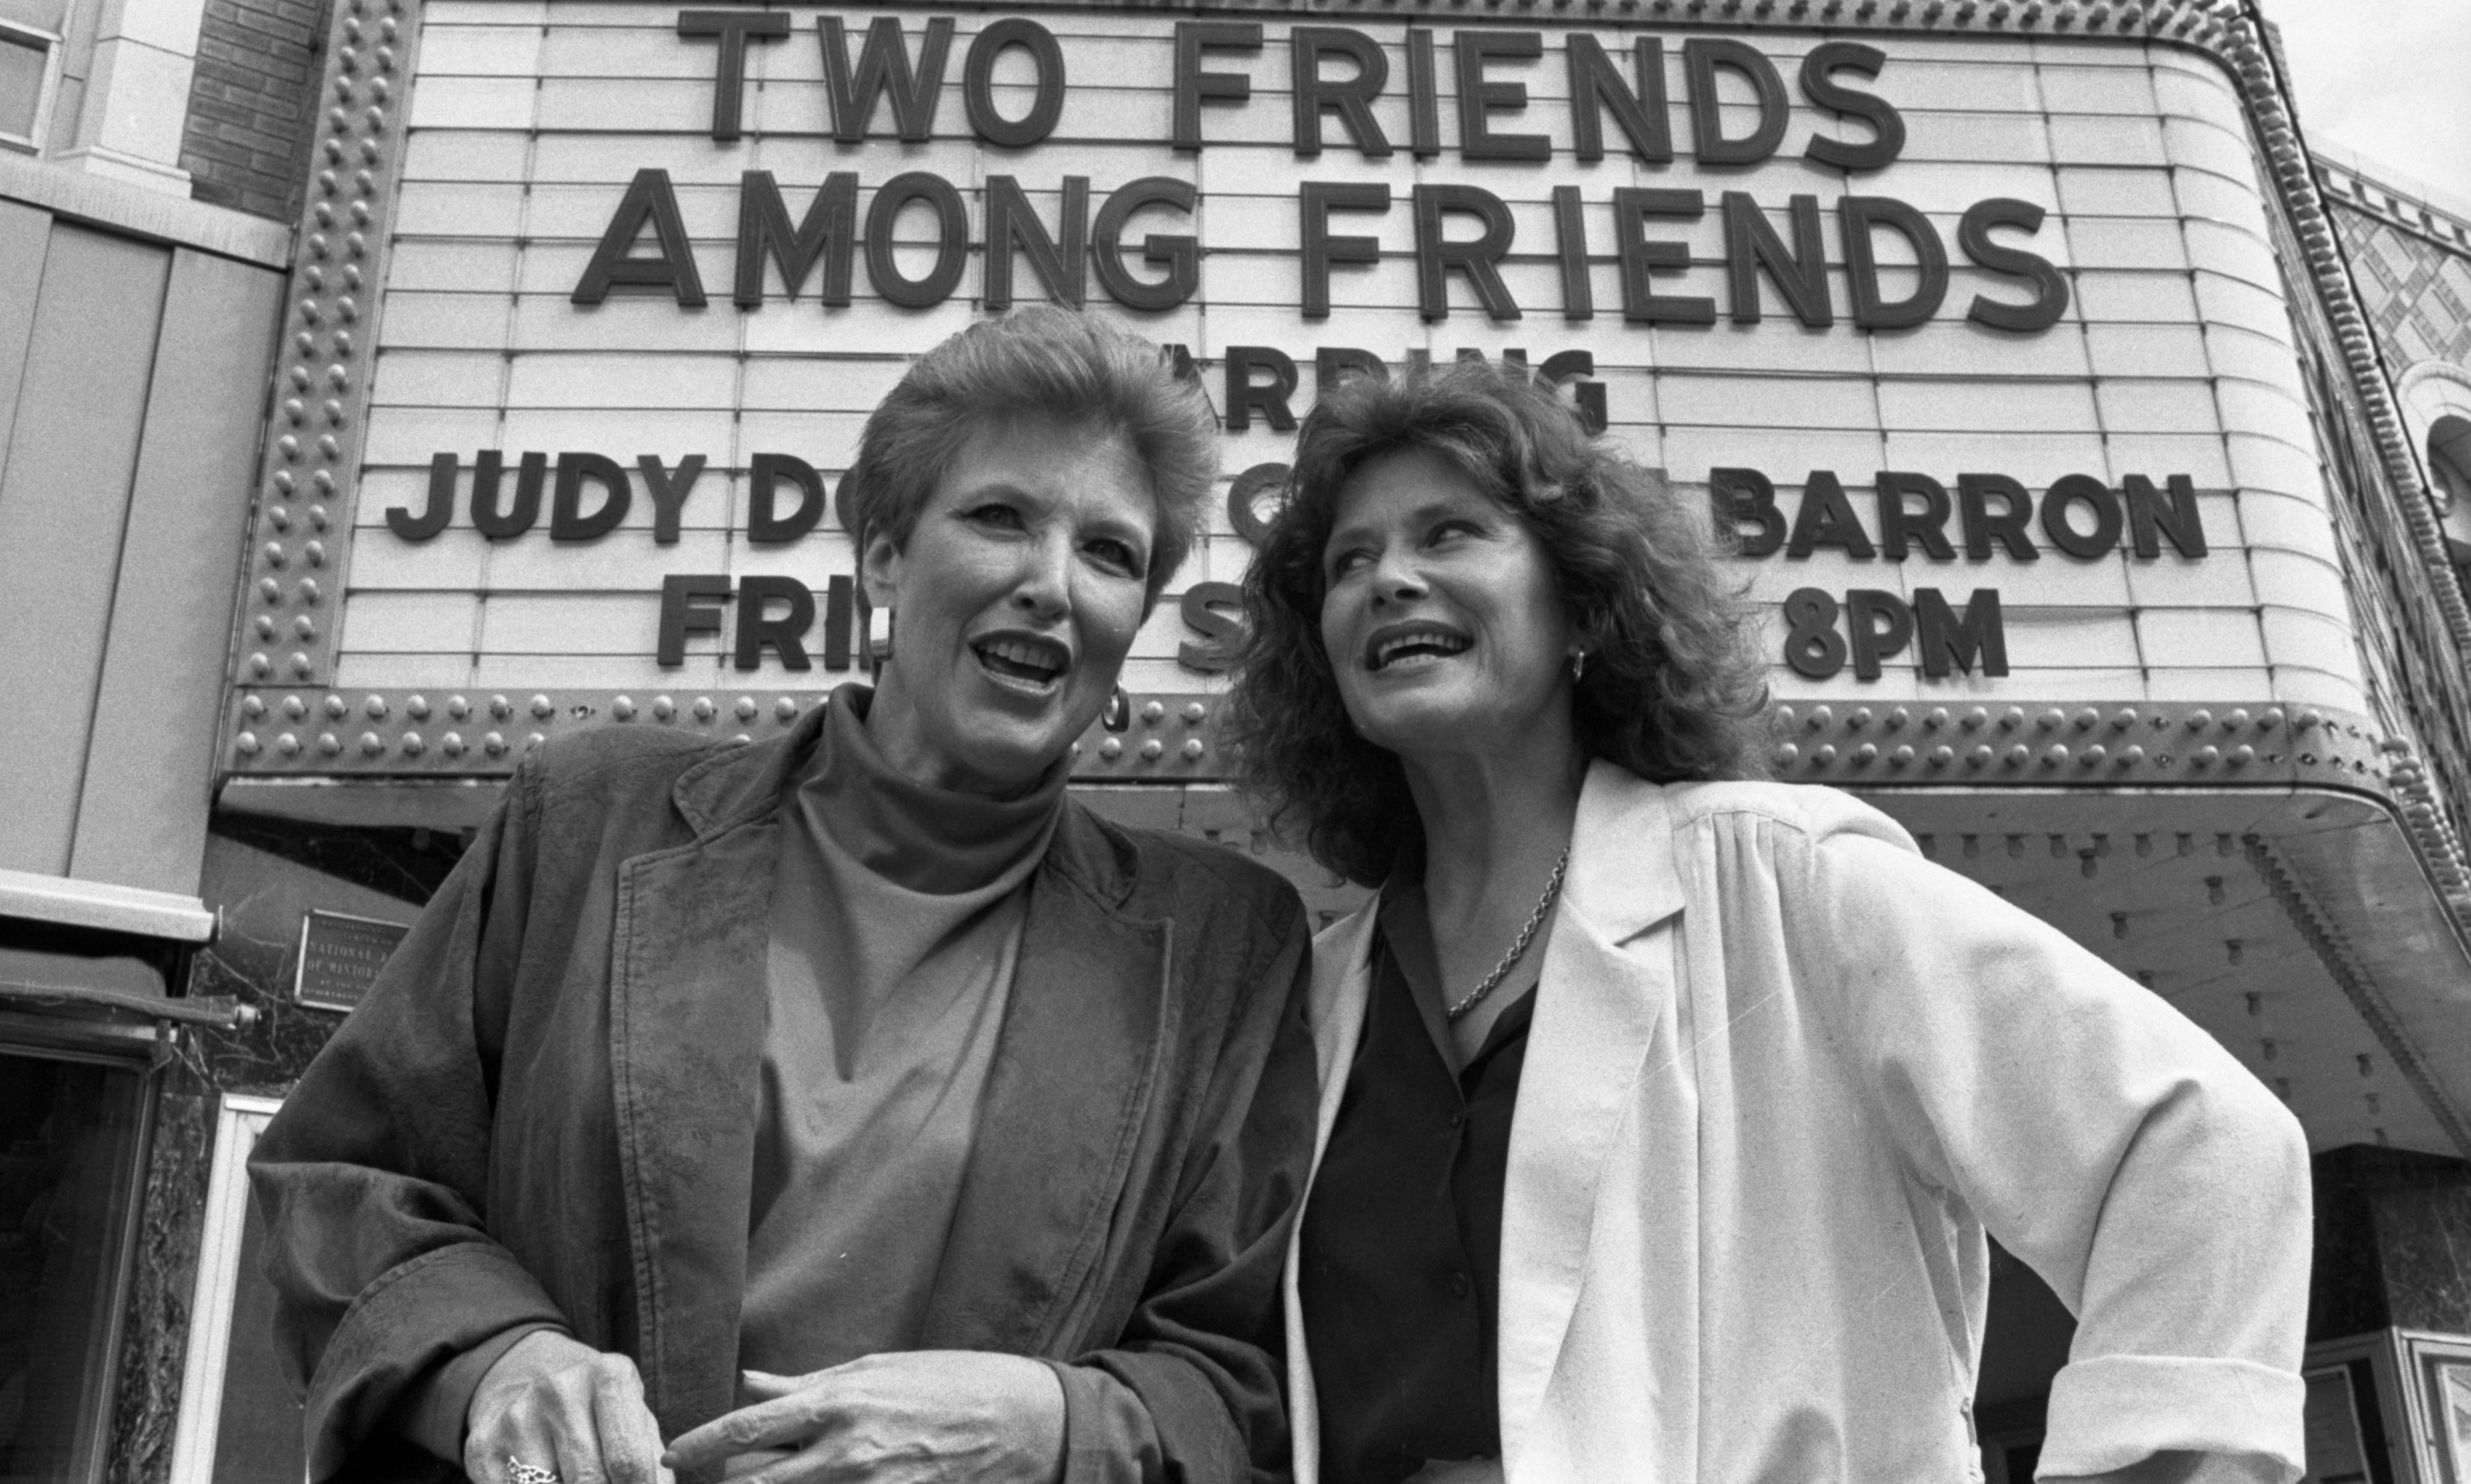 Judith Dow Towsley & Connie Barron In Front Of Marquee At The Michigan Theater, September 22, 1985 image